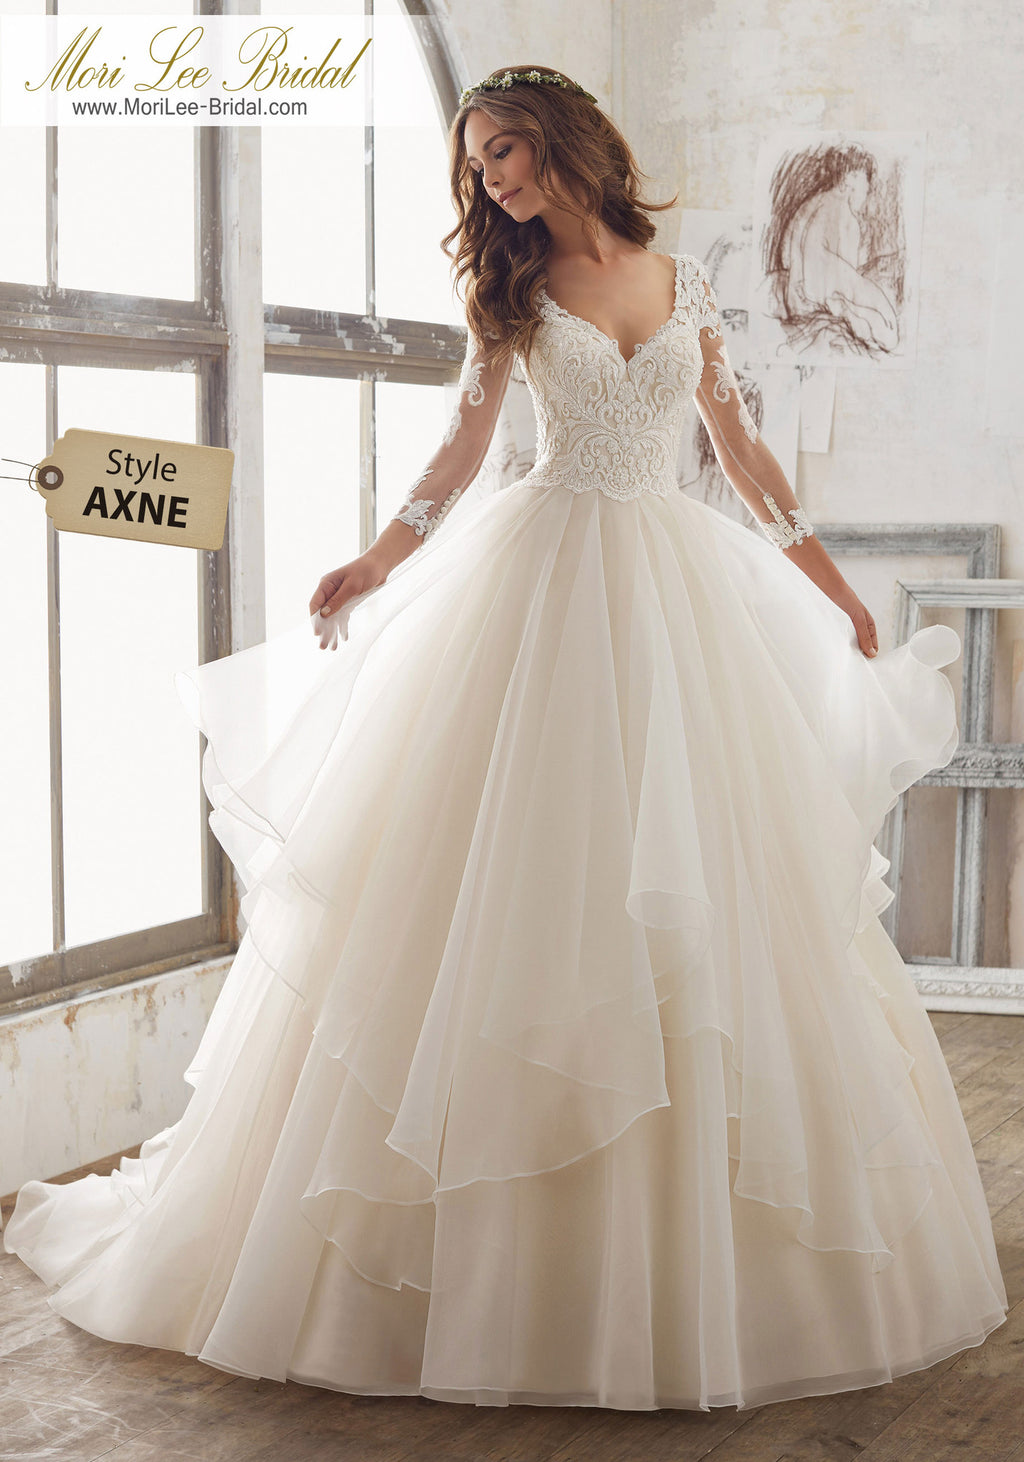 AXNE - Mori Lee Bridal